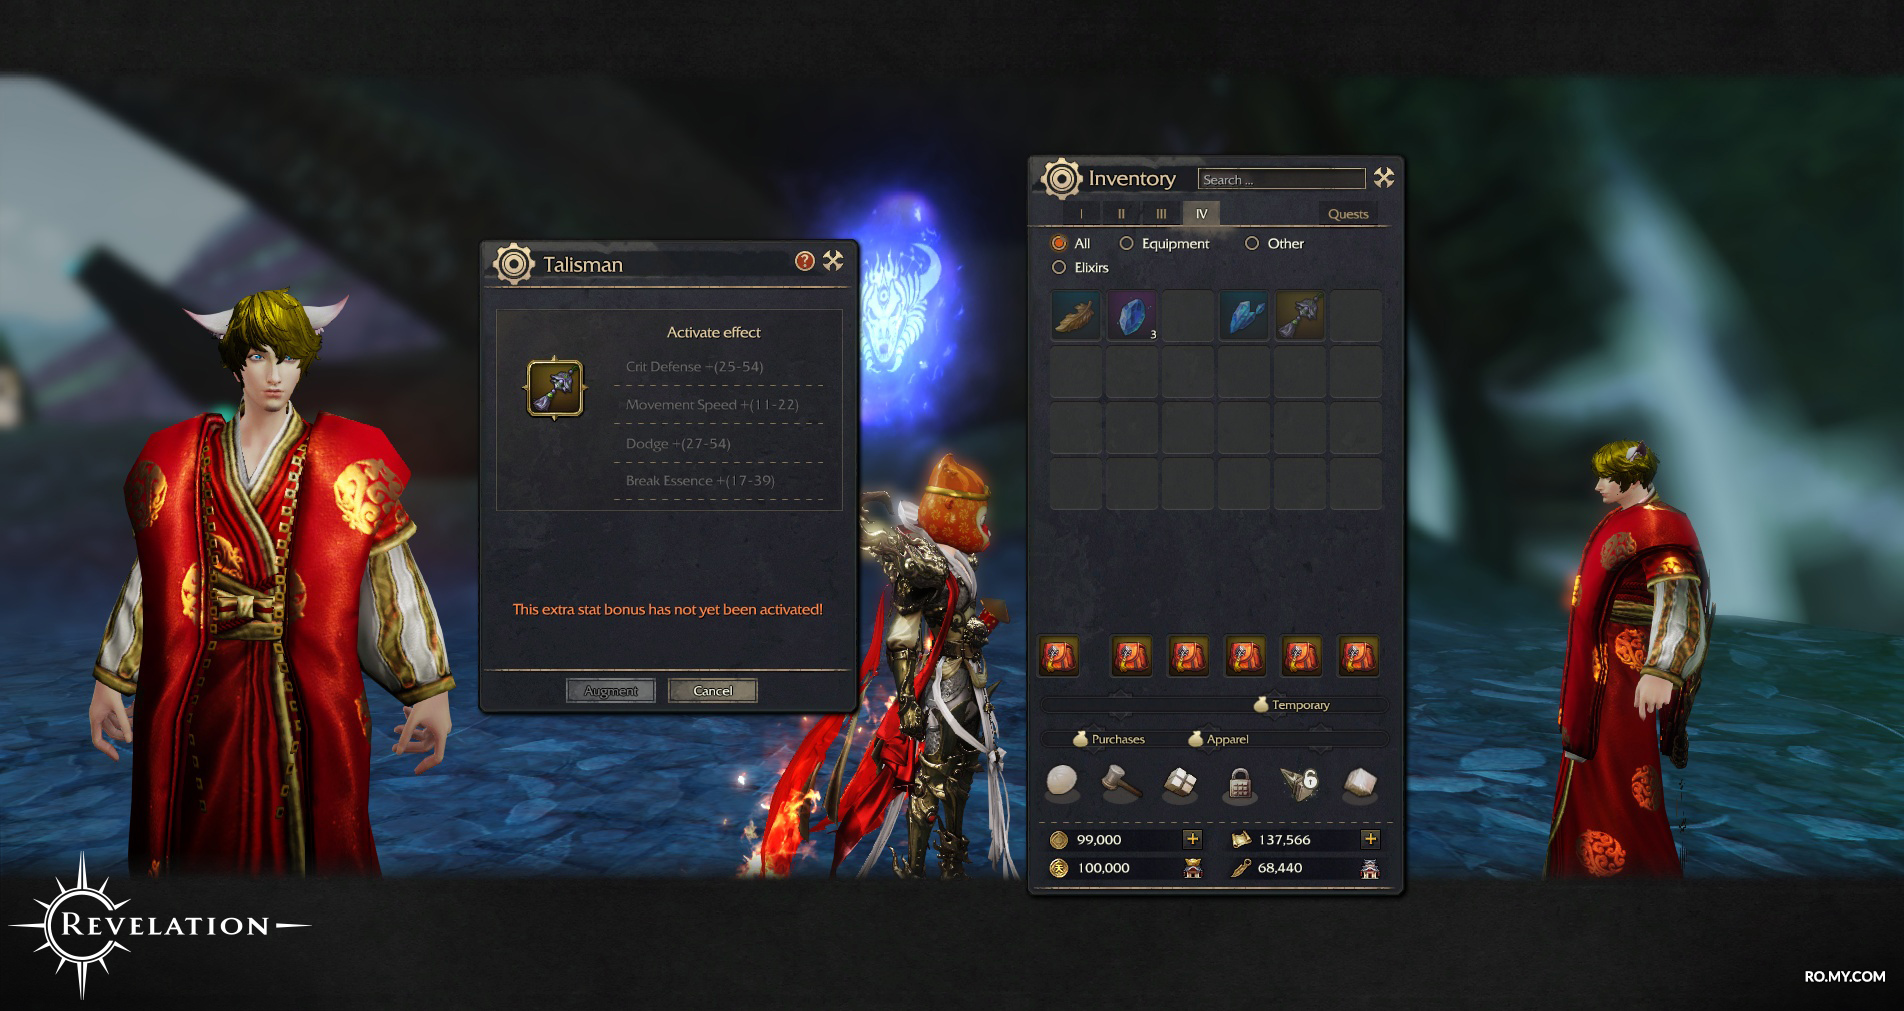 Talismans | Revelation Online - Official Website